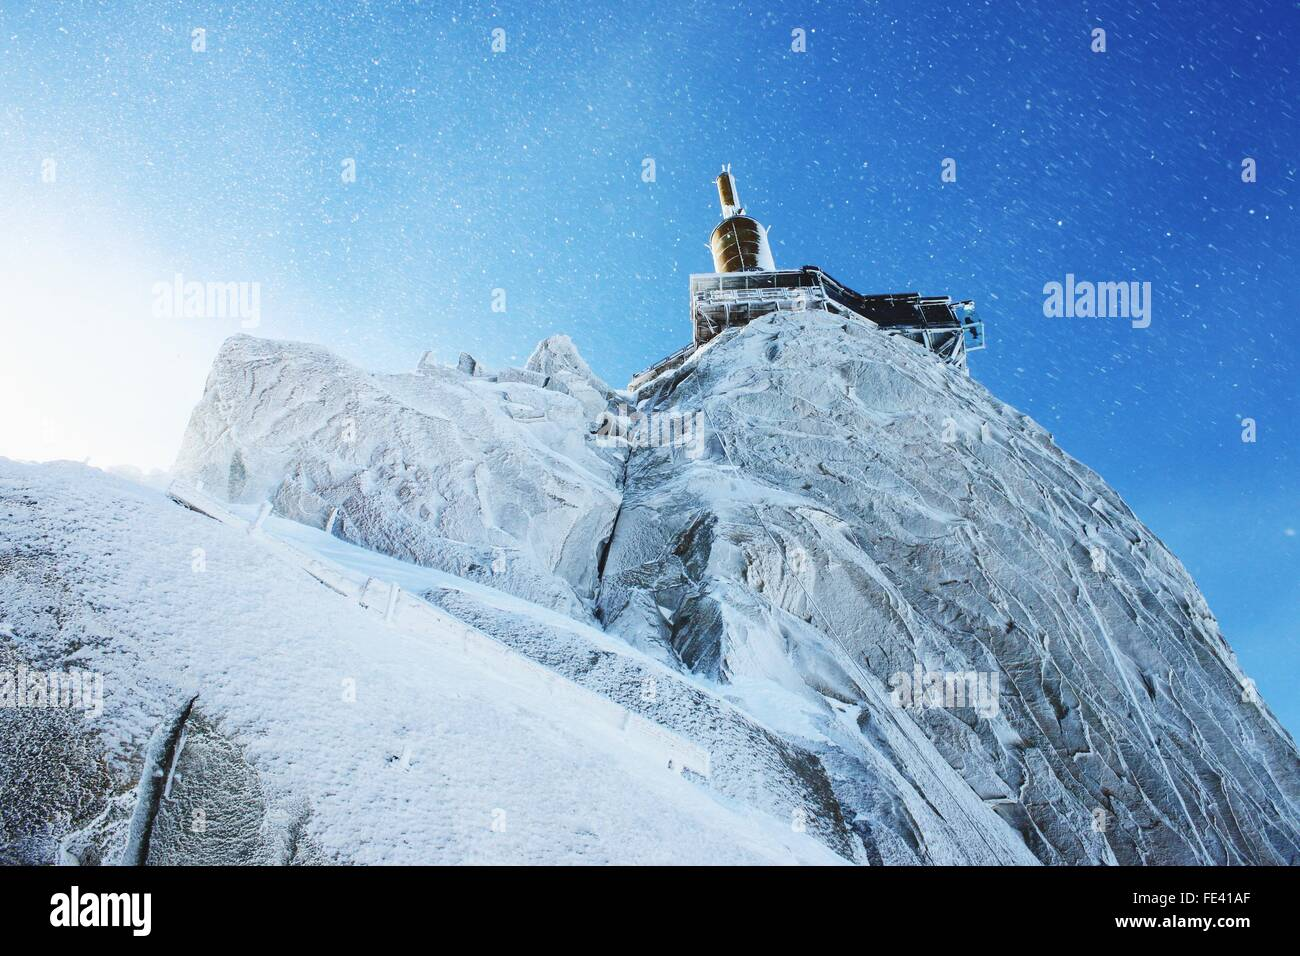 Low Angle View Of Aiguille Du Midi In Snow Against Blue Sky Stock Photo